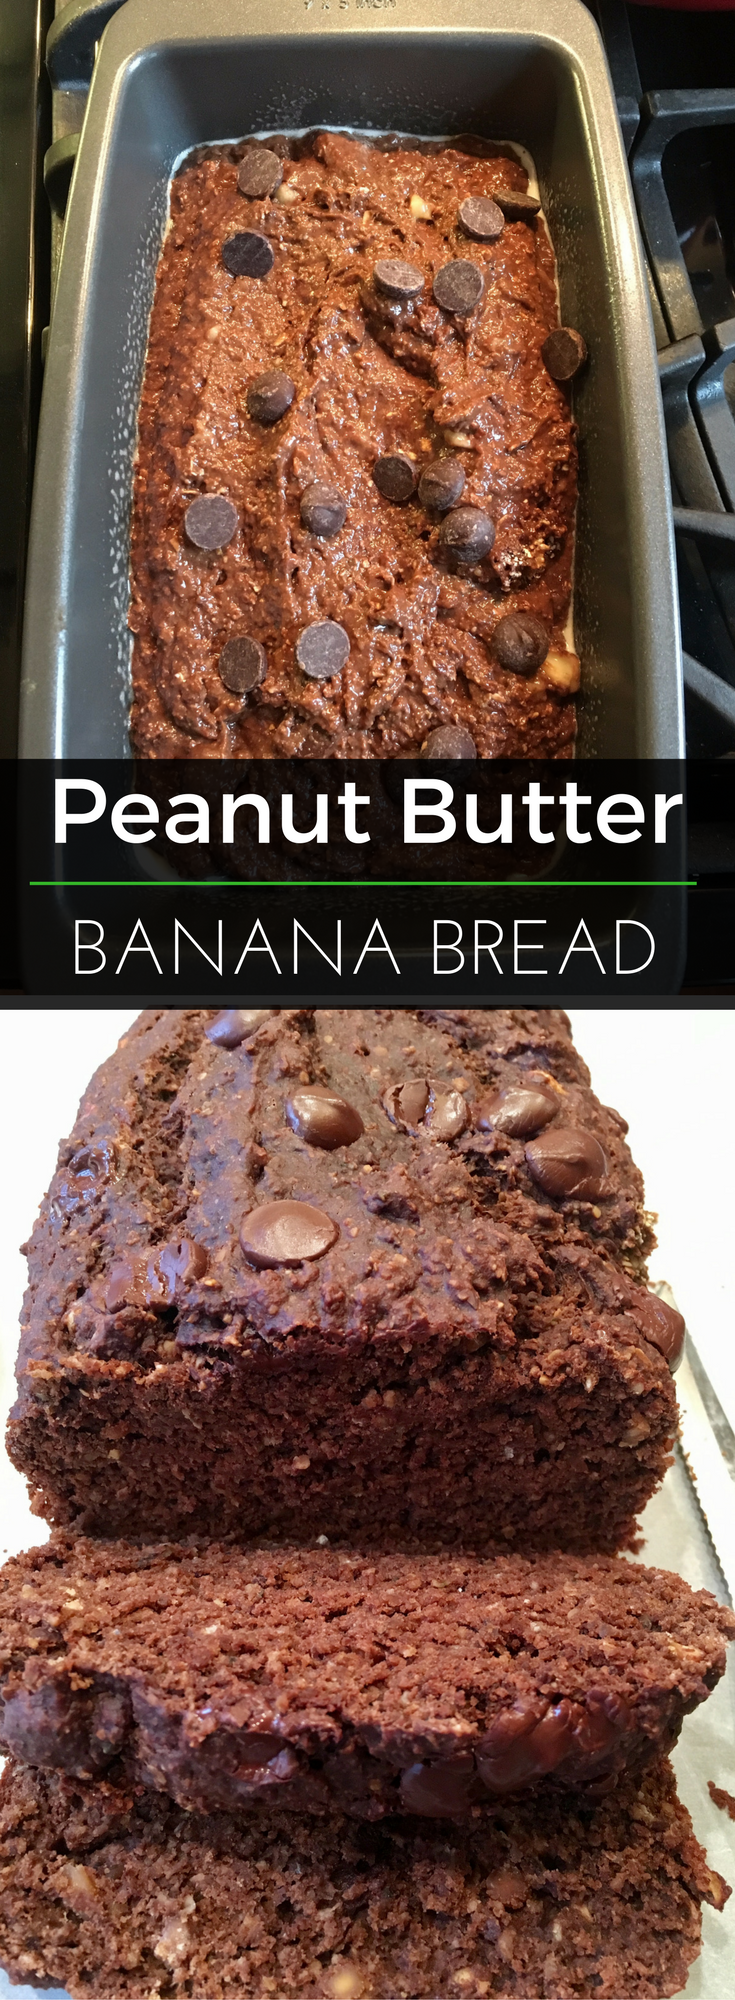 Peanut butter & banana is an awesome power snack - then bake into a sweet bread AND add chocolate! Doesn't get much better than this recipe. | Clearly Organic Nutritionist Corner #organic #nutritionist